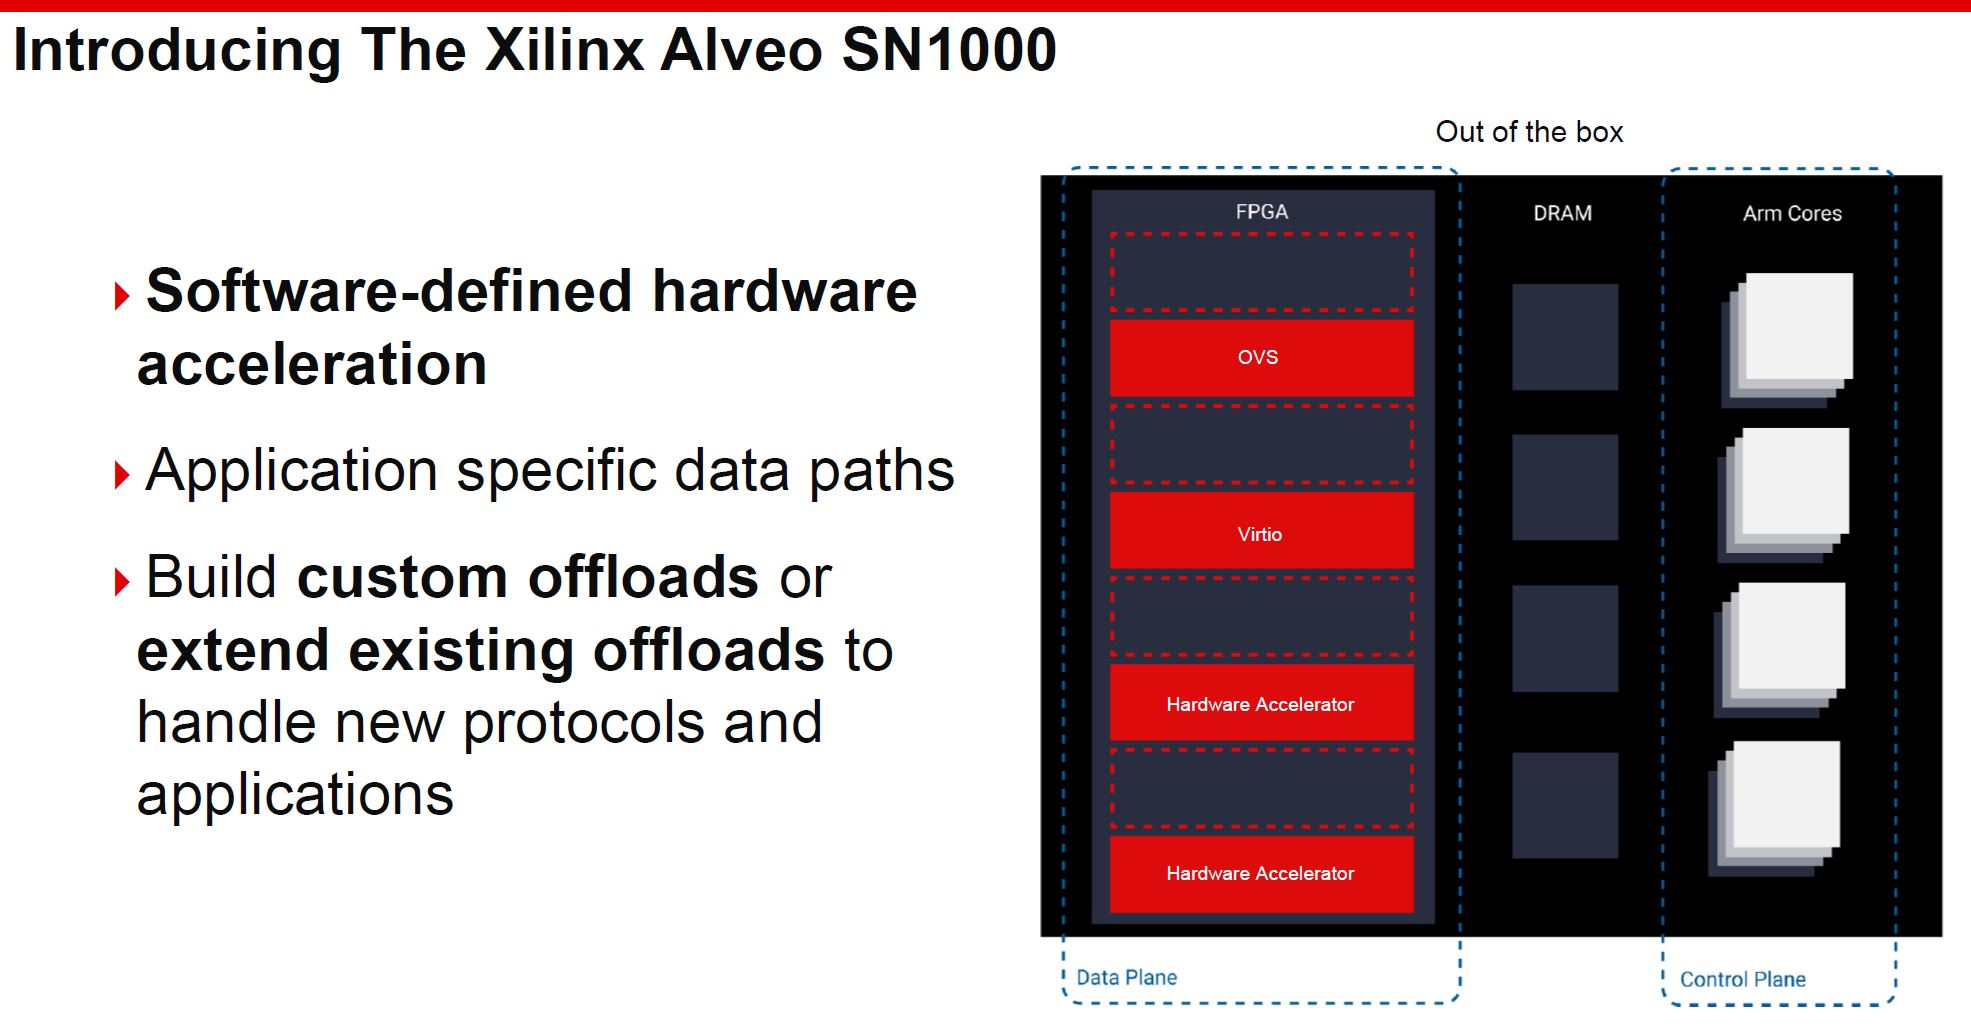 Xilinx Alveo SN1000 Introduction 2